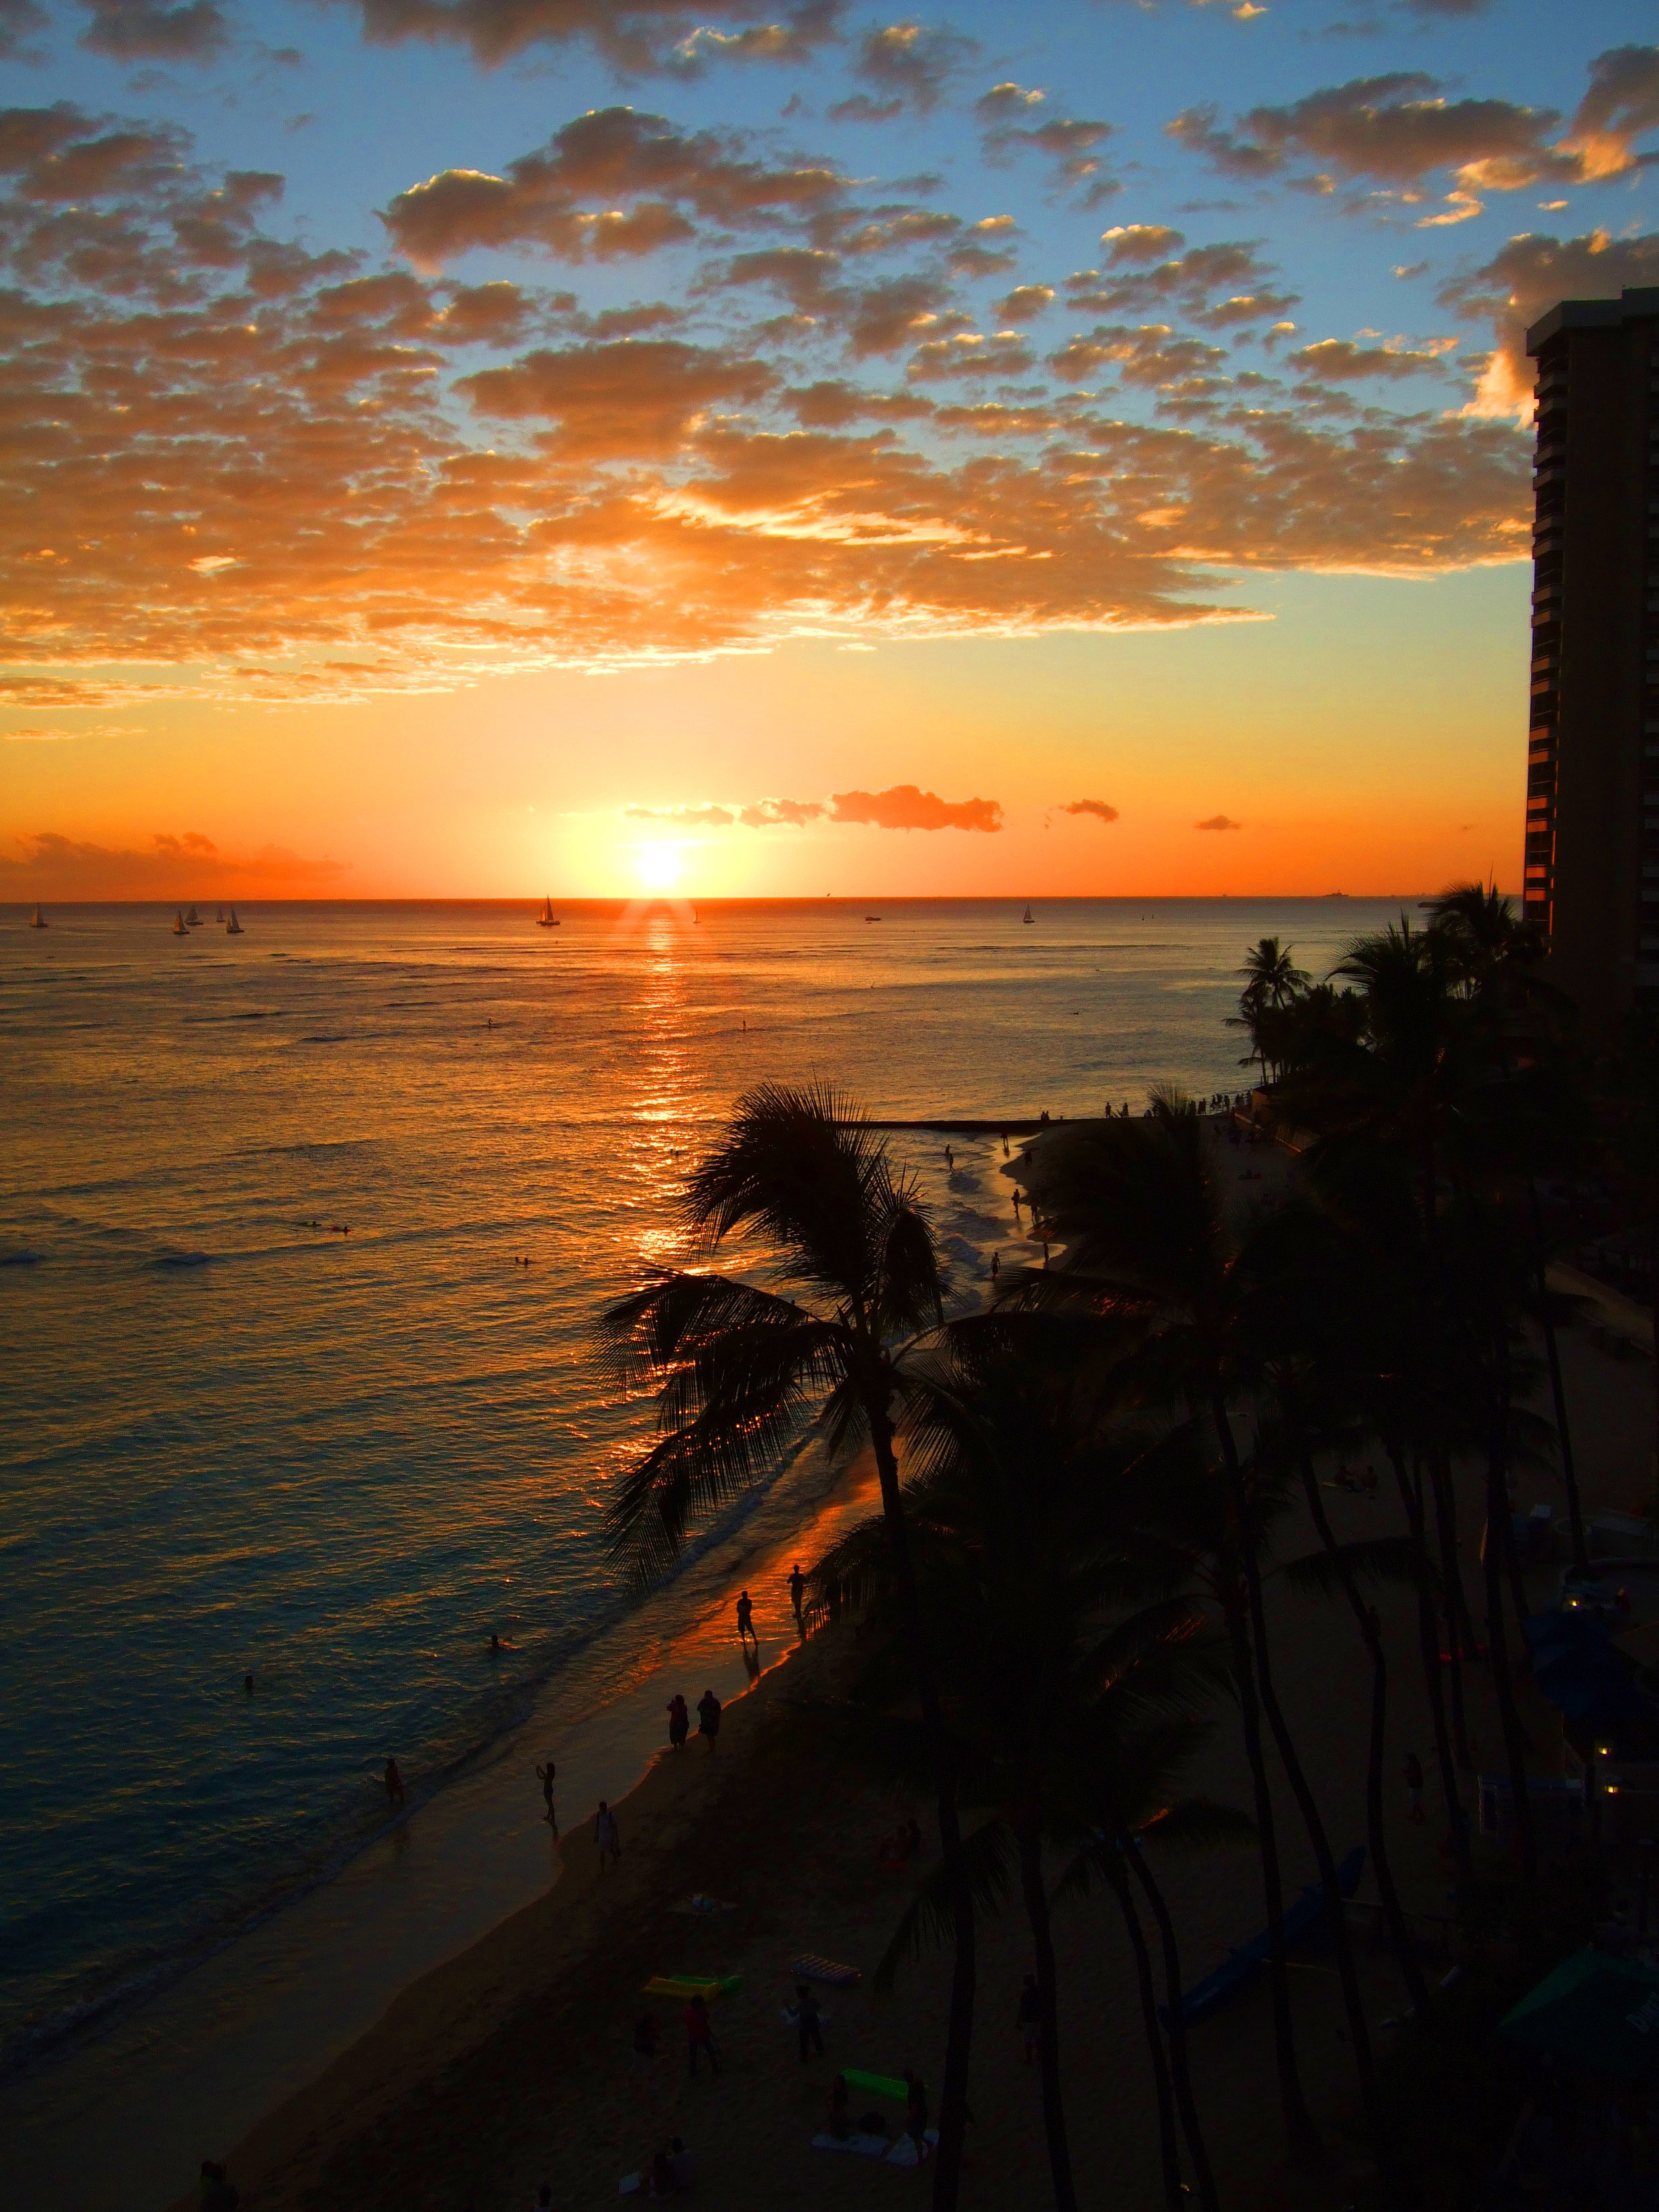 Sunset On Waikiki Beach In Honolulu Hawaii Image Free